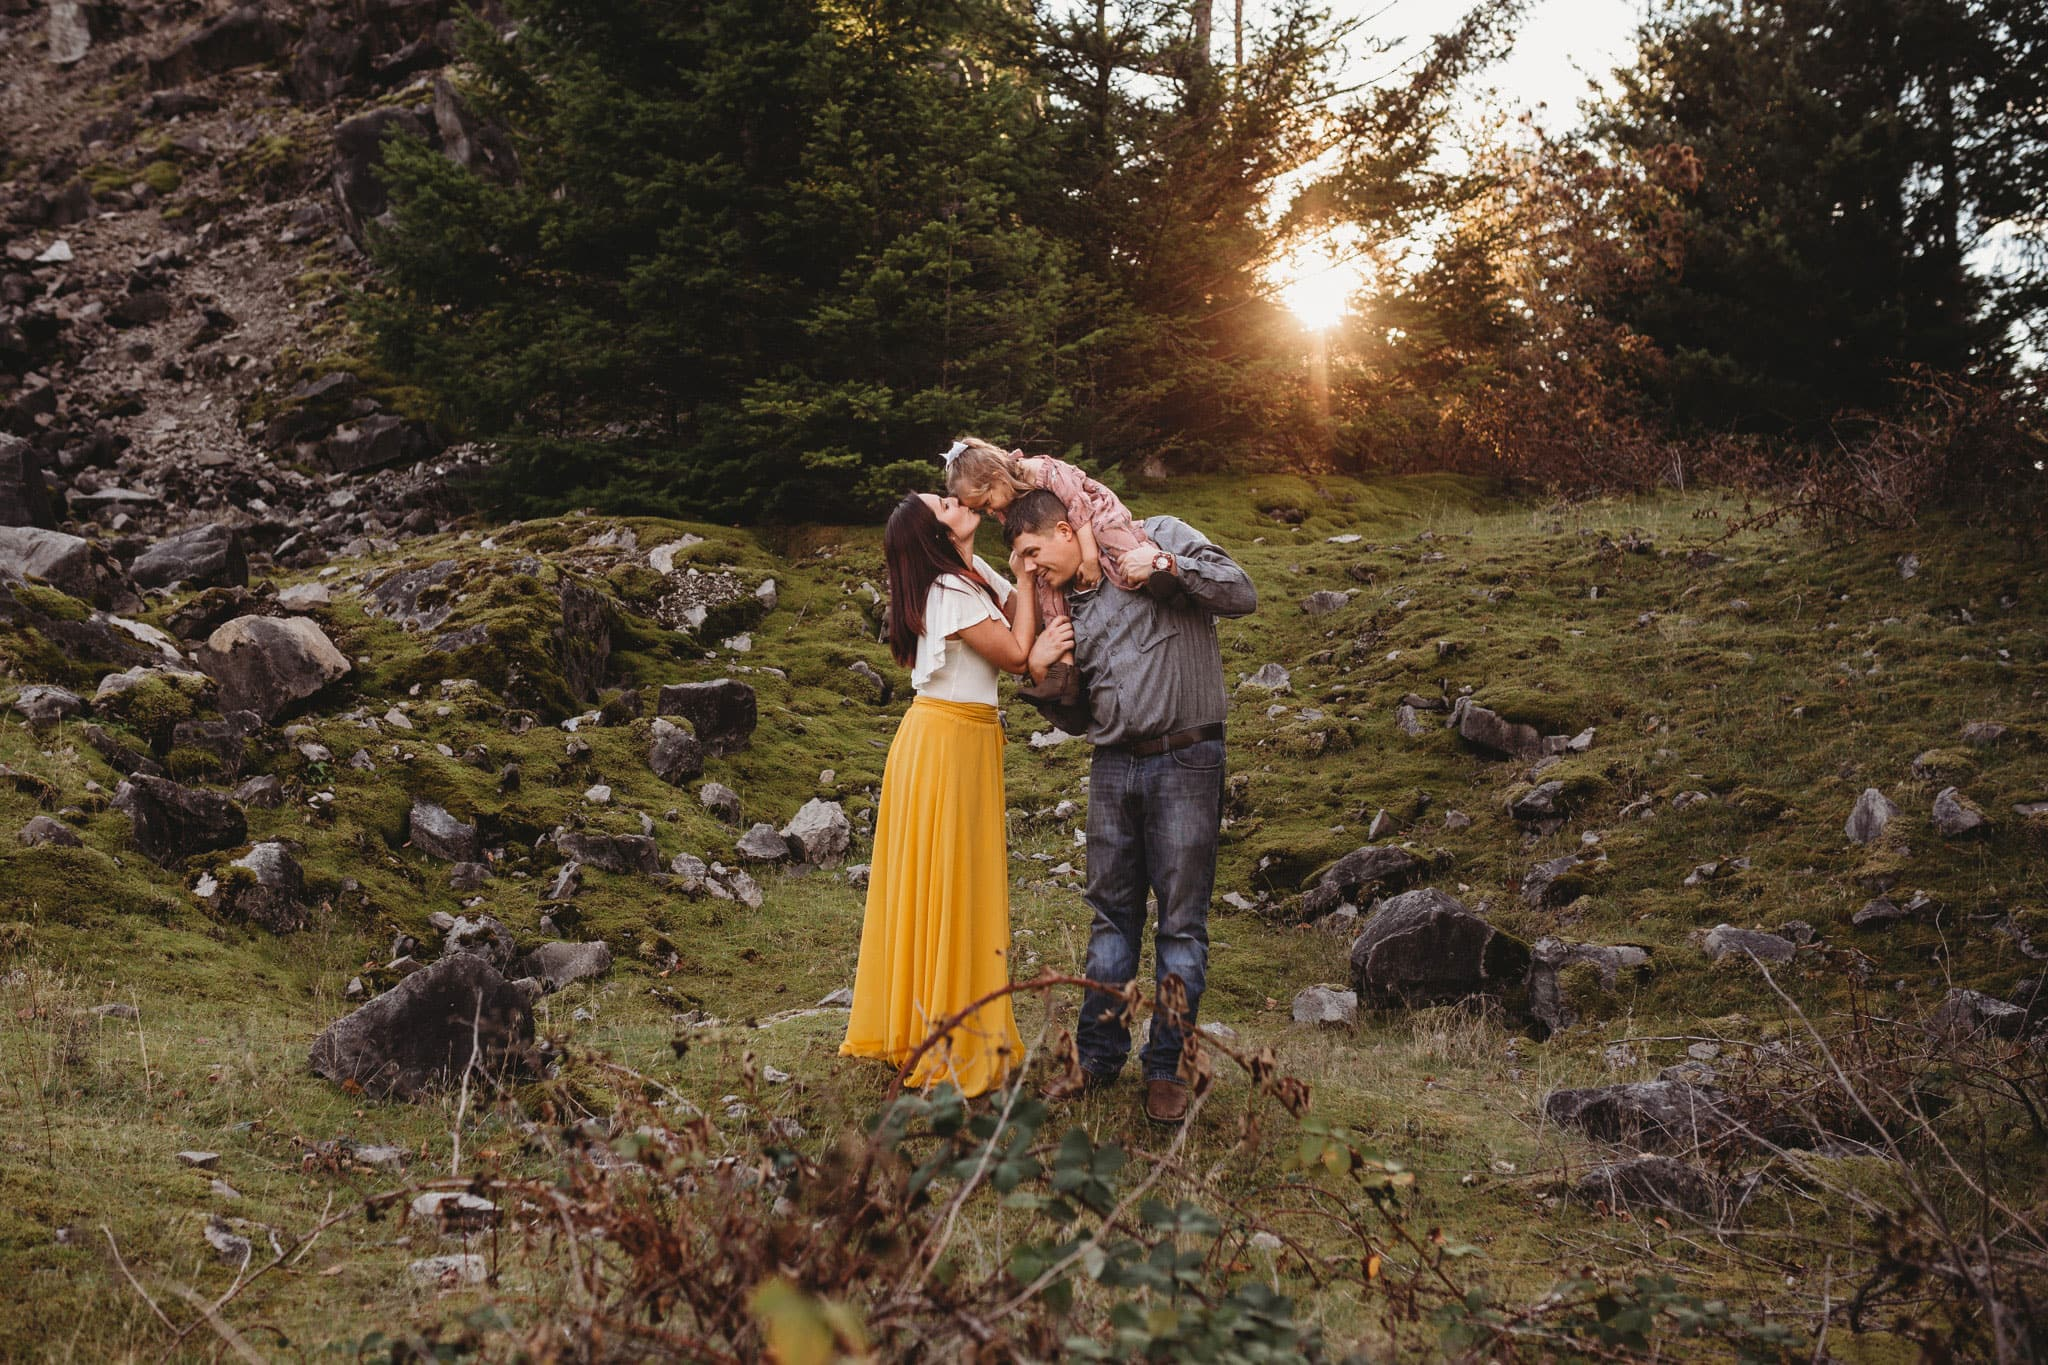 sweet family in nature with a sunburst